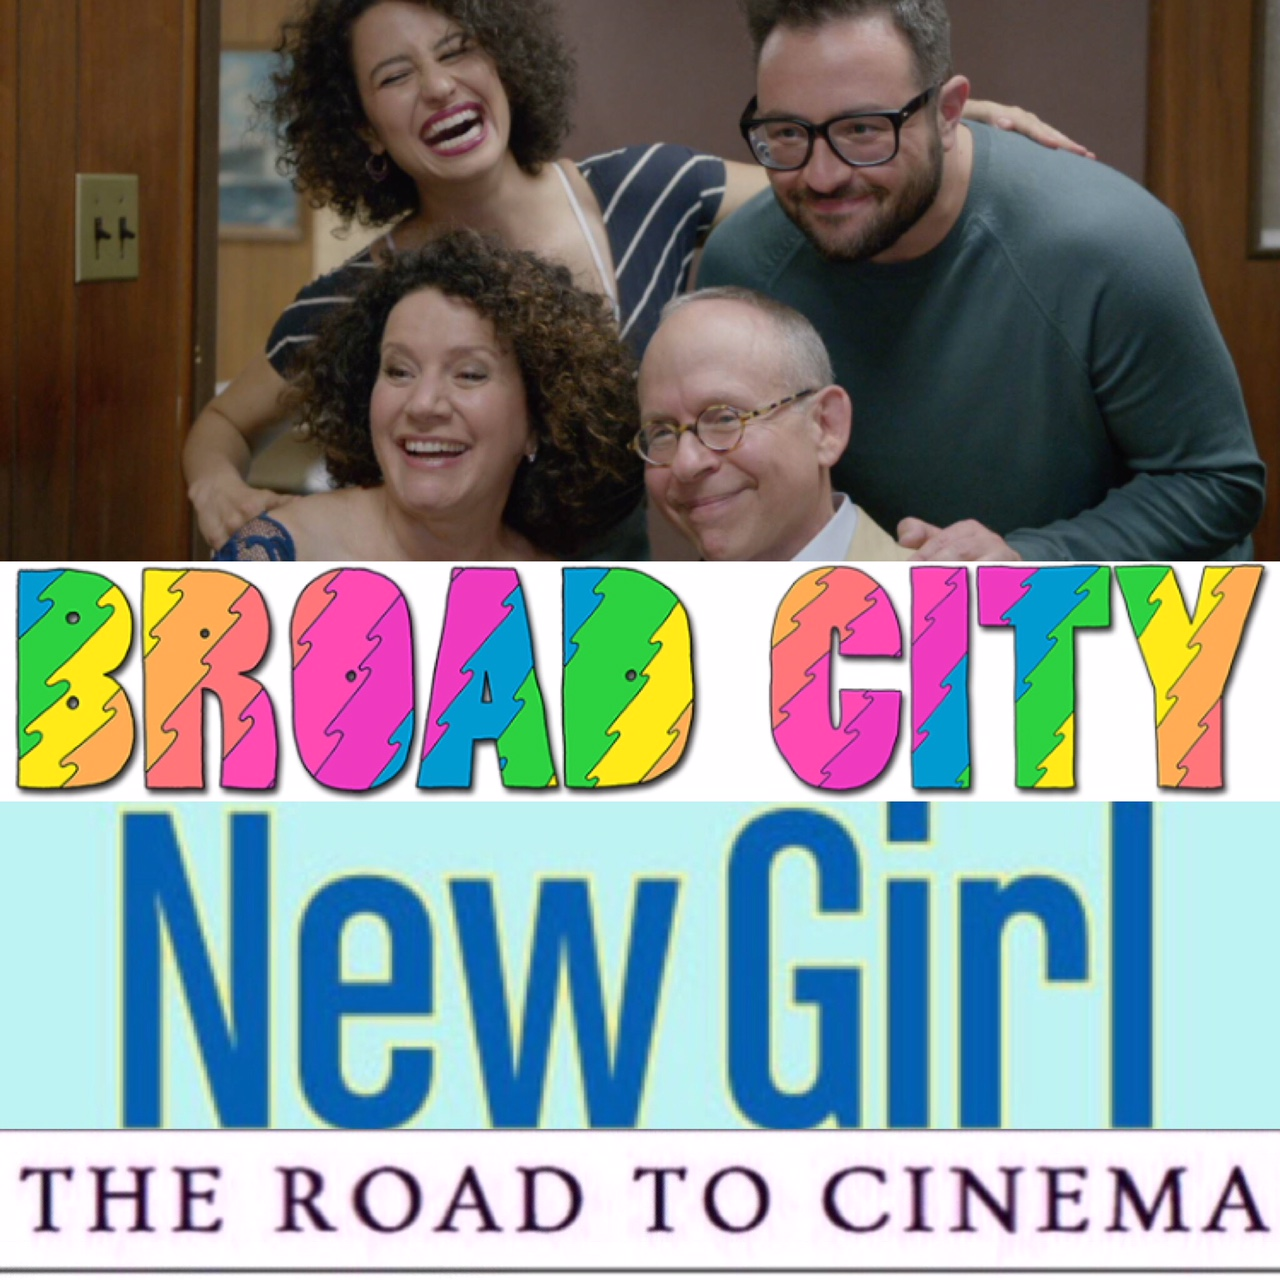 Eliot Glazer on writing for 'New Girl', acting on 'Broad City', improv, and his live musical-comedy show 'Haunting Renditions'